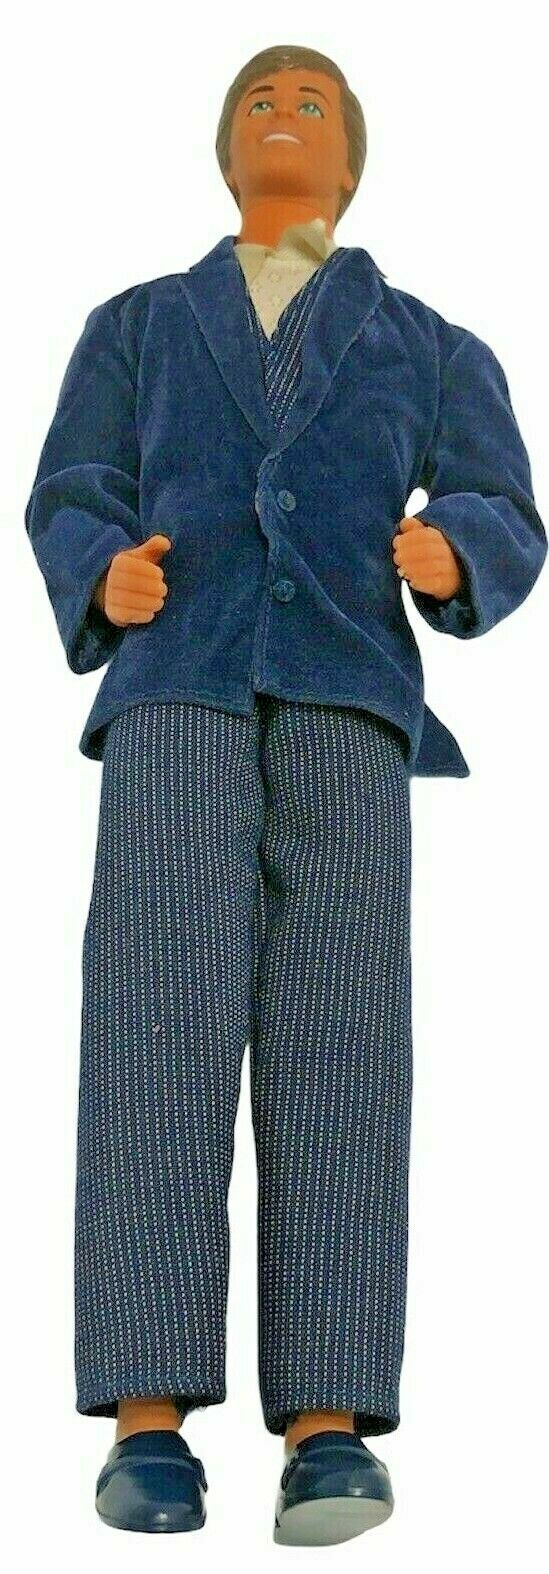 Mattel Vintage Ken with Complete One Piece  Outfit Dinner Smoking jacket damage - $37.04